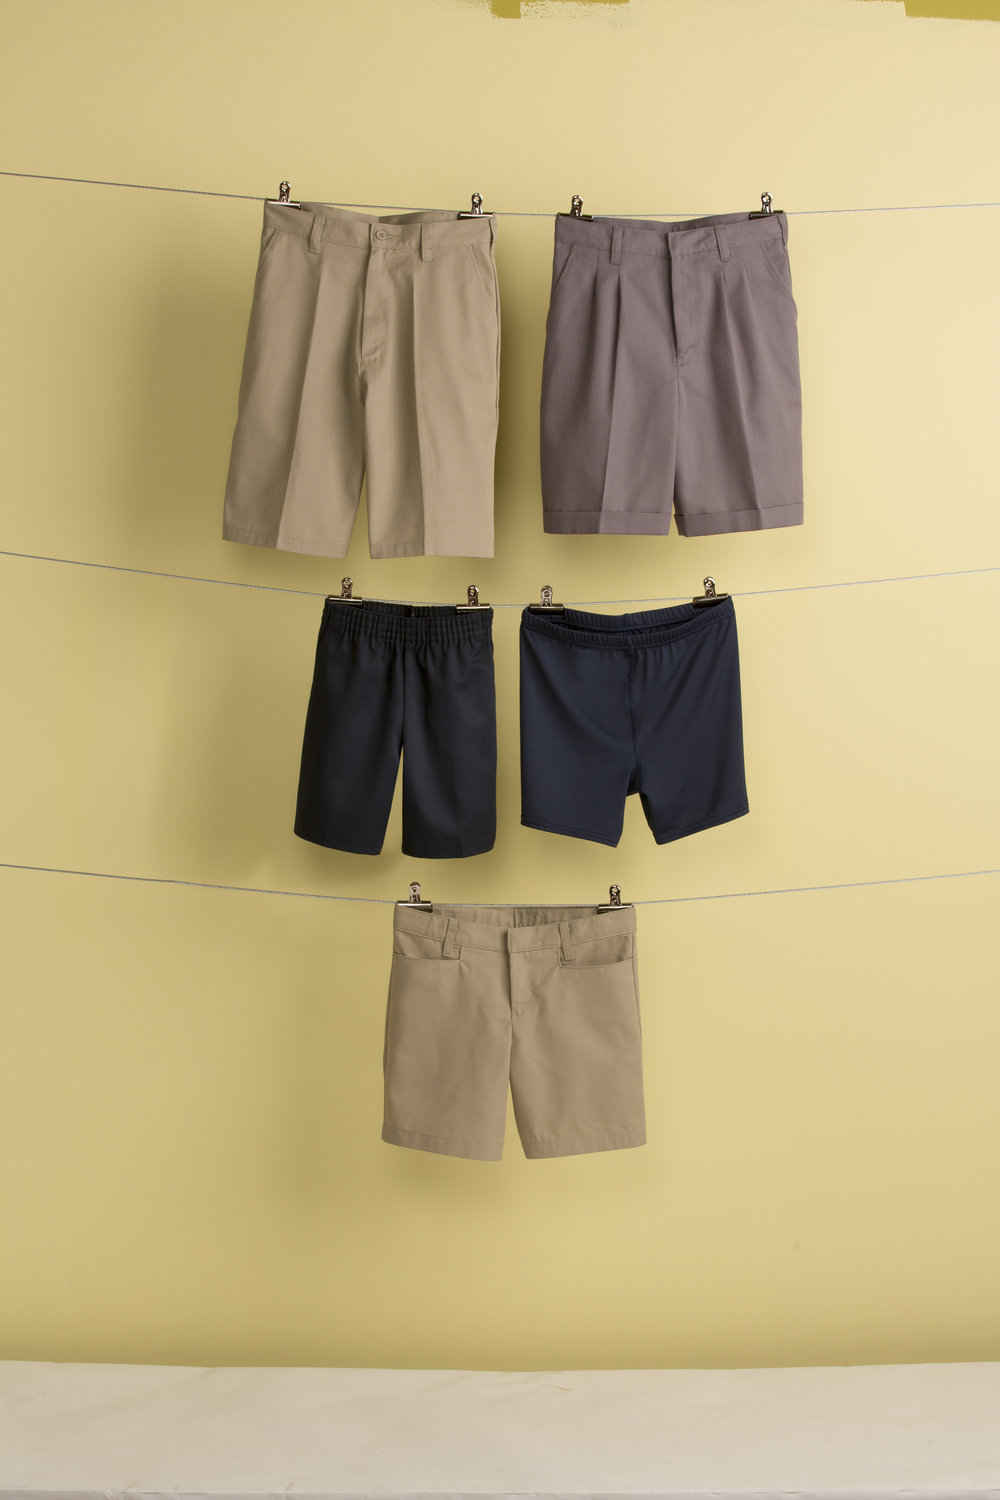 THE STUDENT SHOP - SHORTS AND PANTS